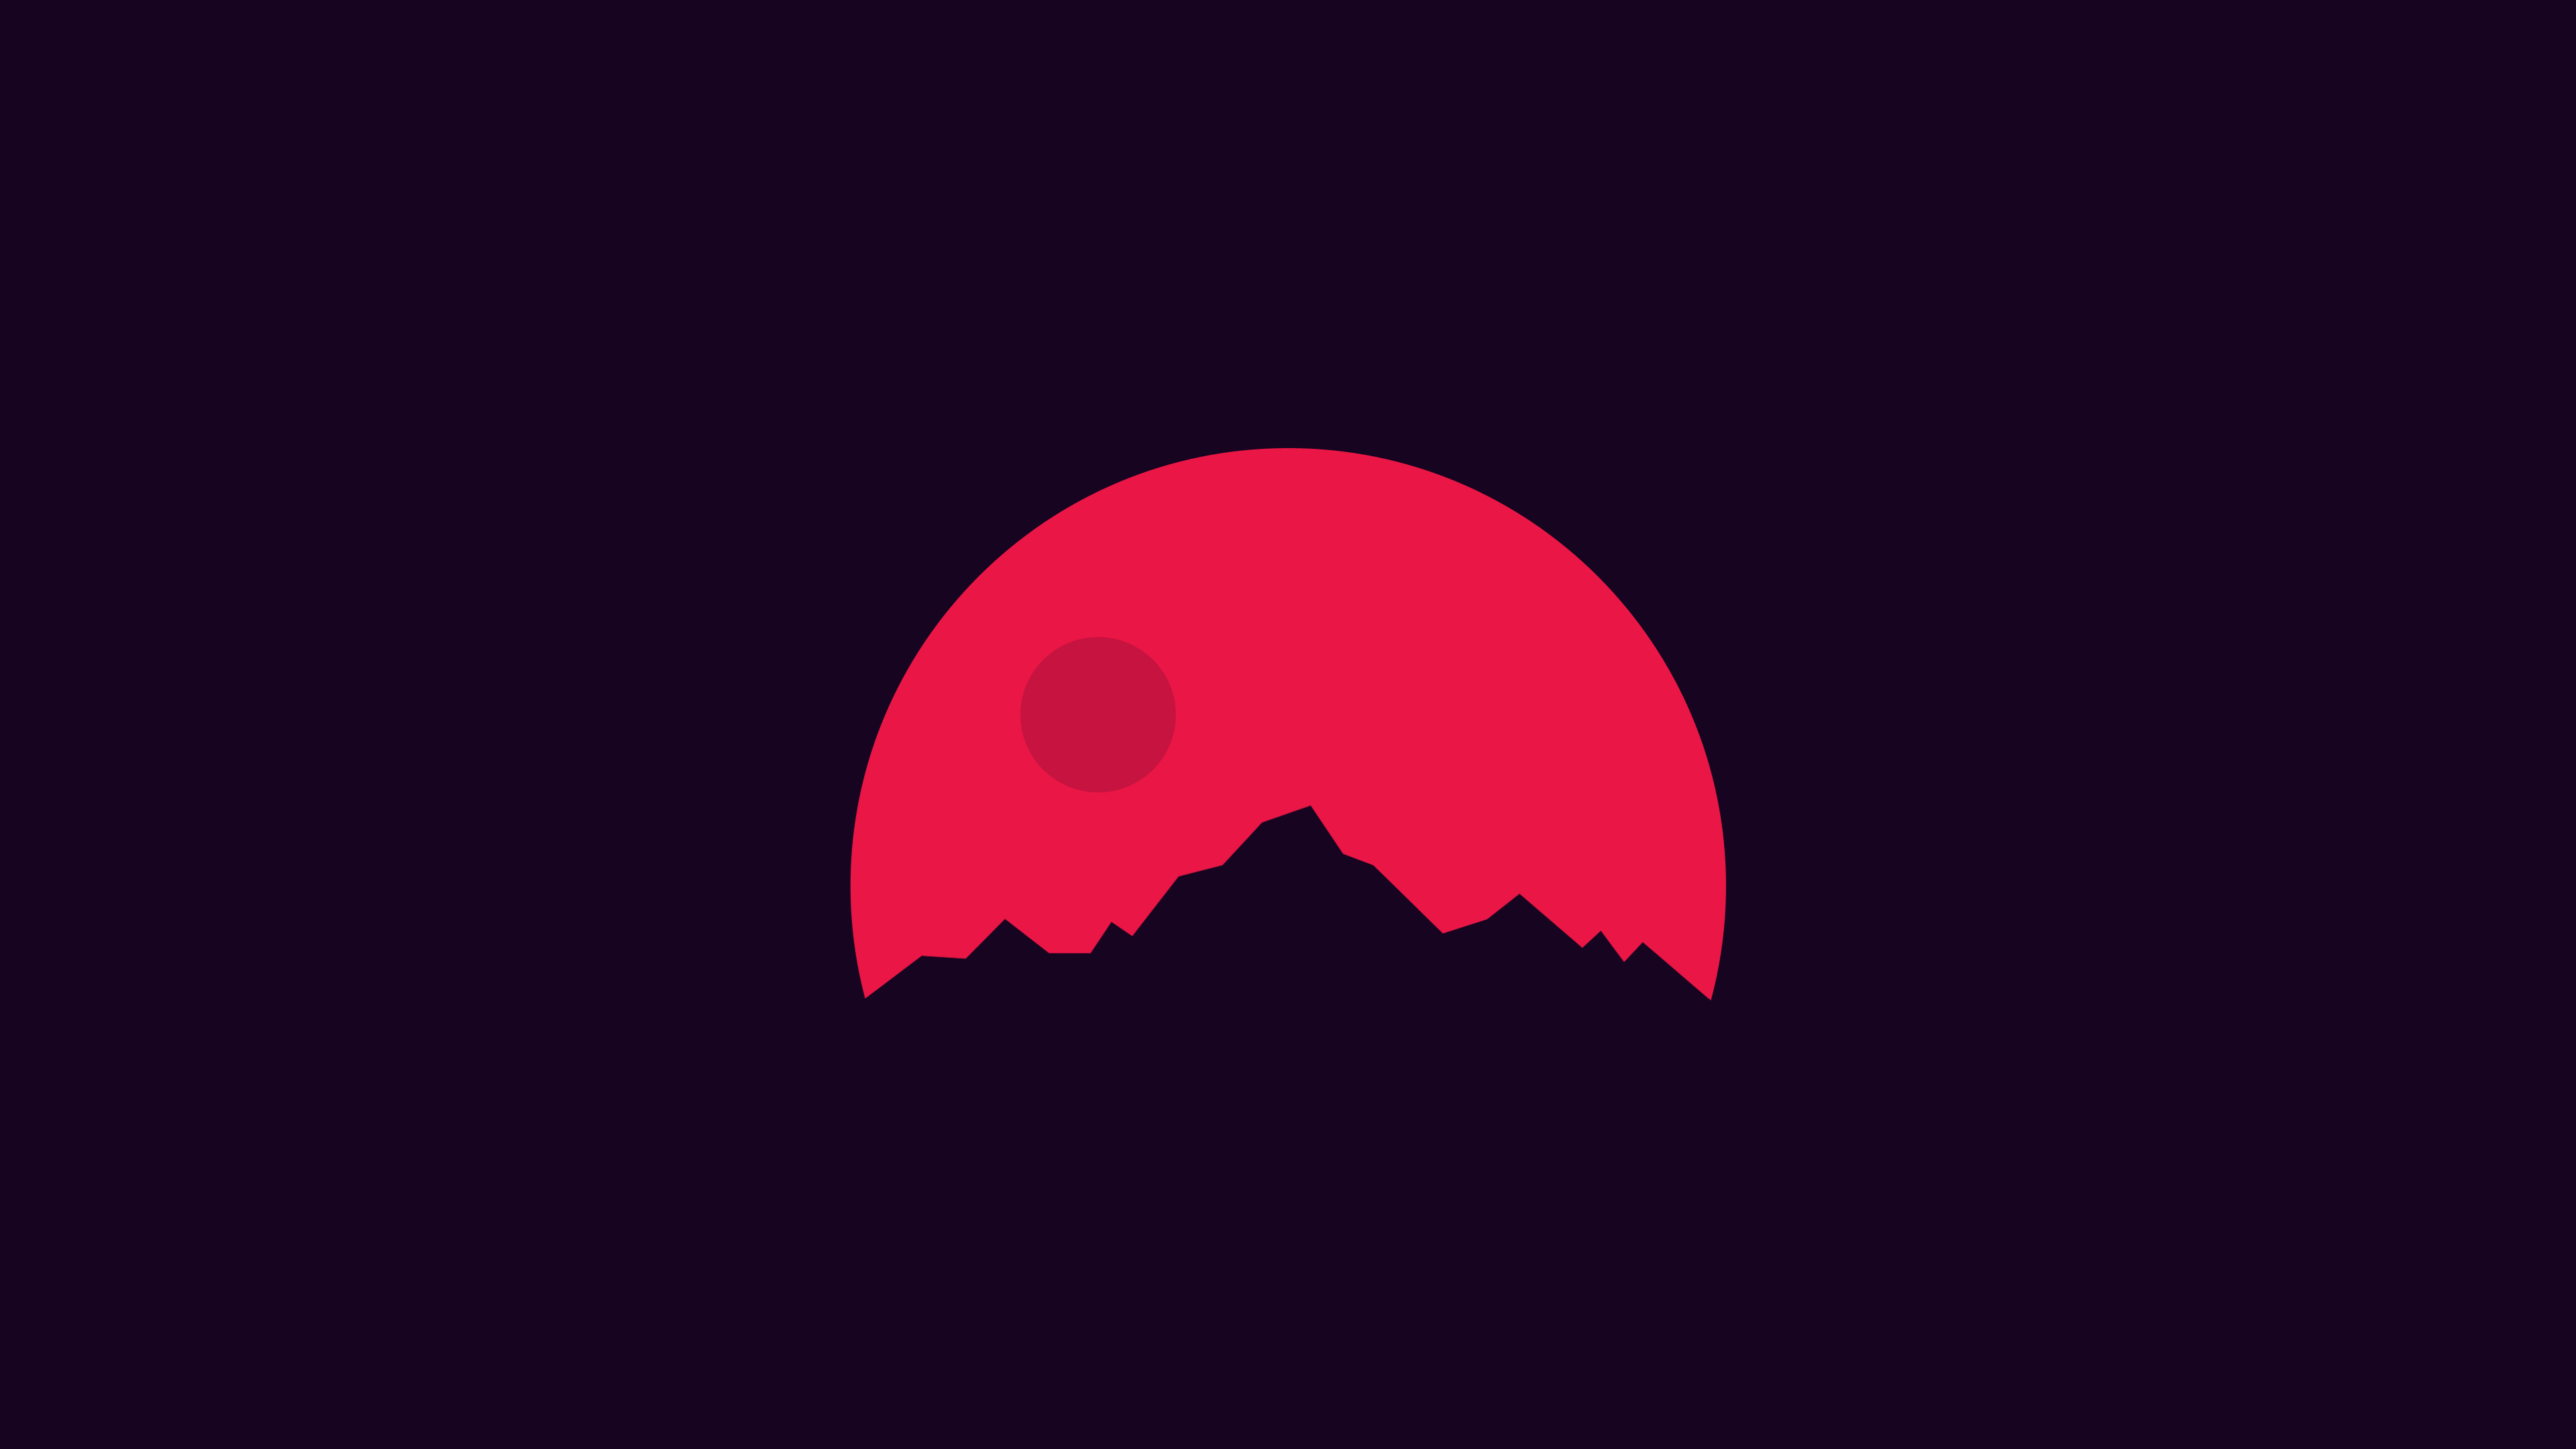 Minimalism Mountains Red, HD Artist, 4k Wallpapers, Images ...